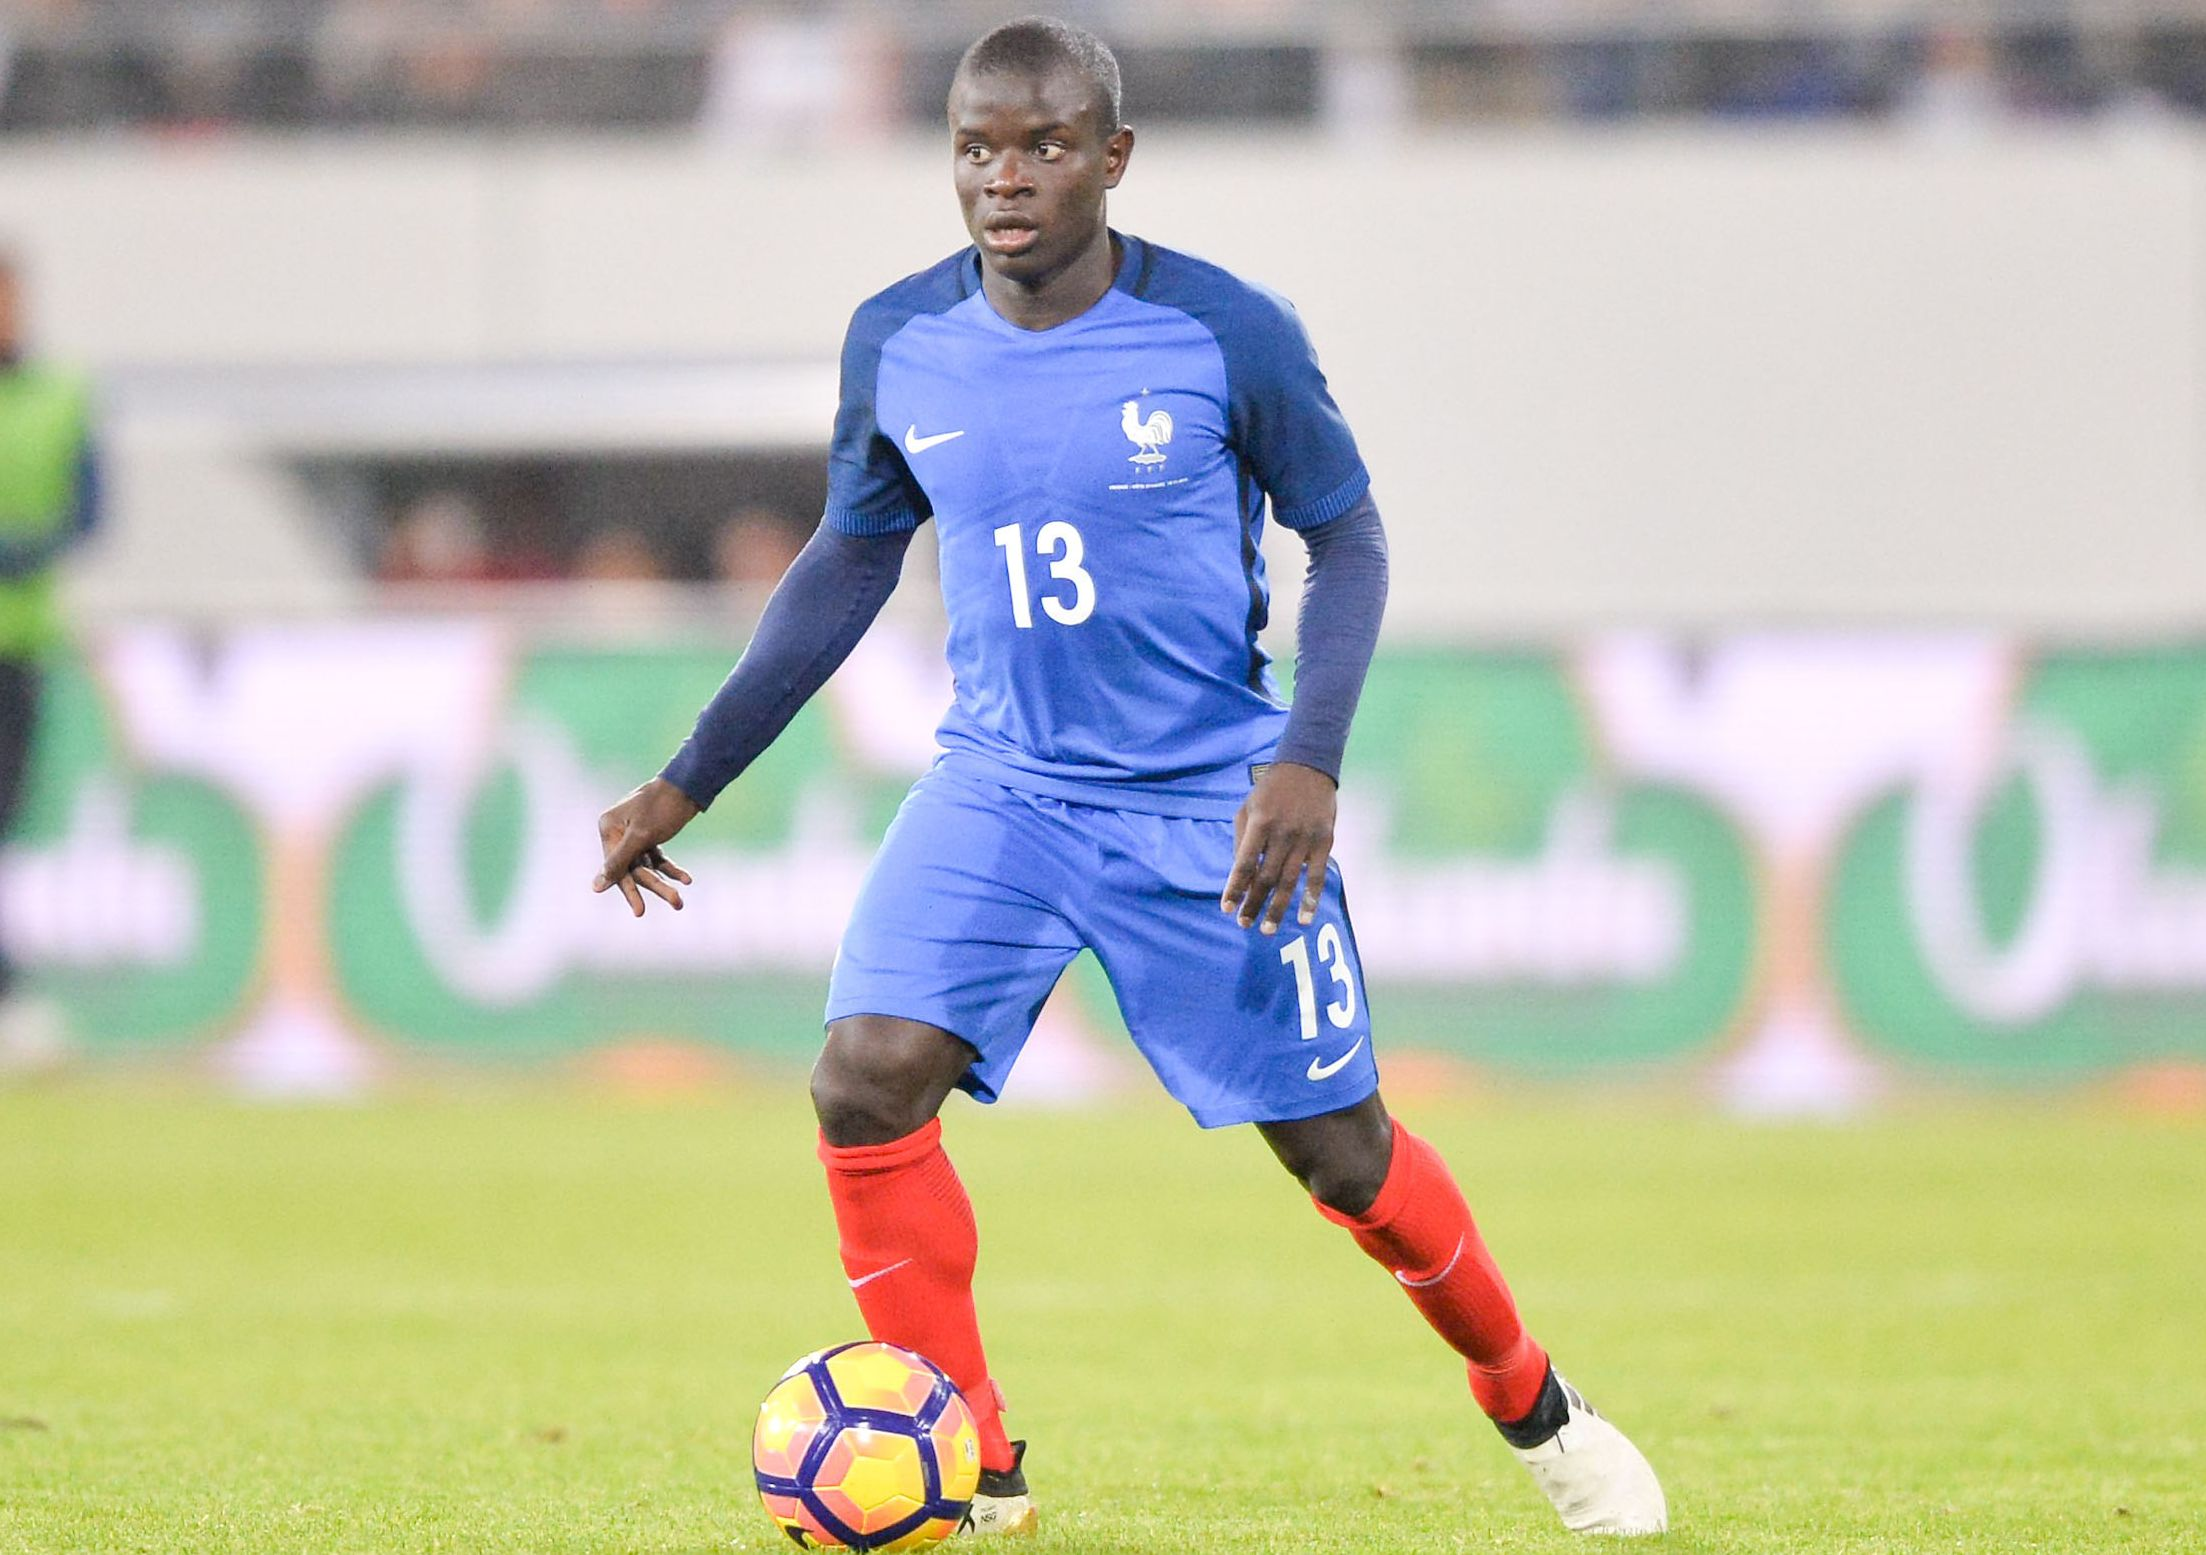 Football - Equipe de France - N'Golo Kanté, «Little big man» est devenu (très) grand